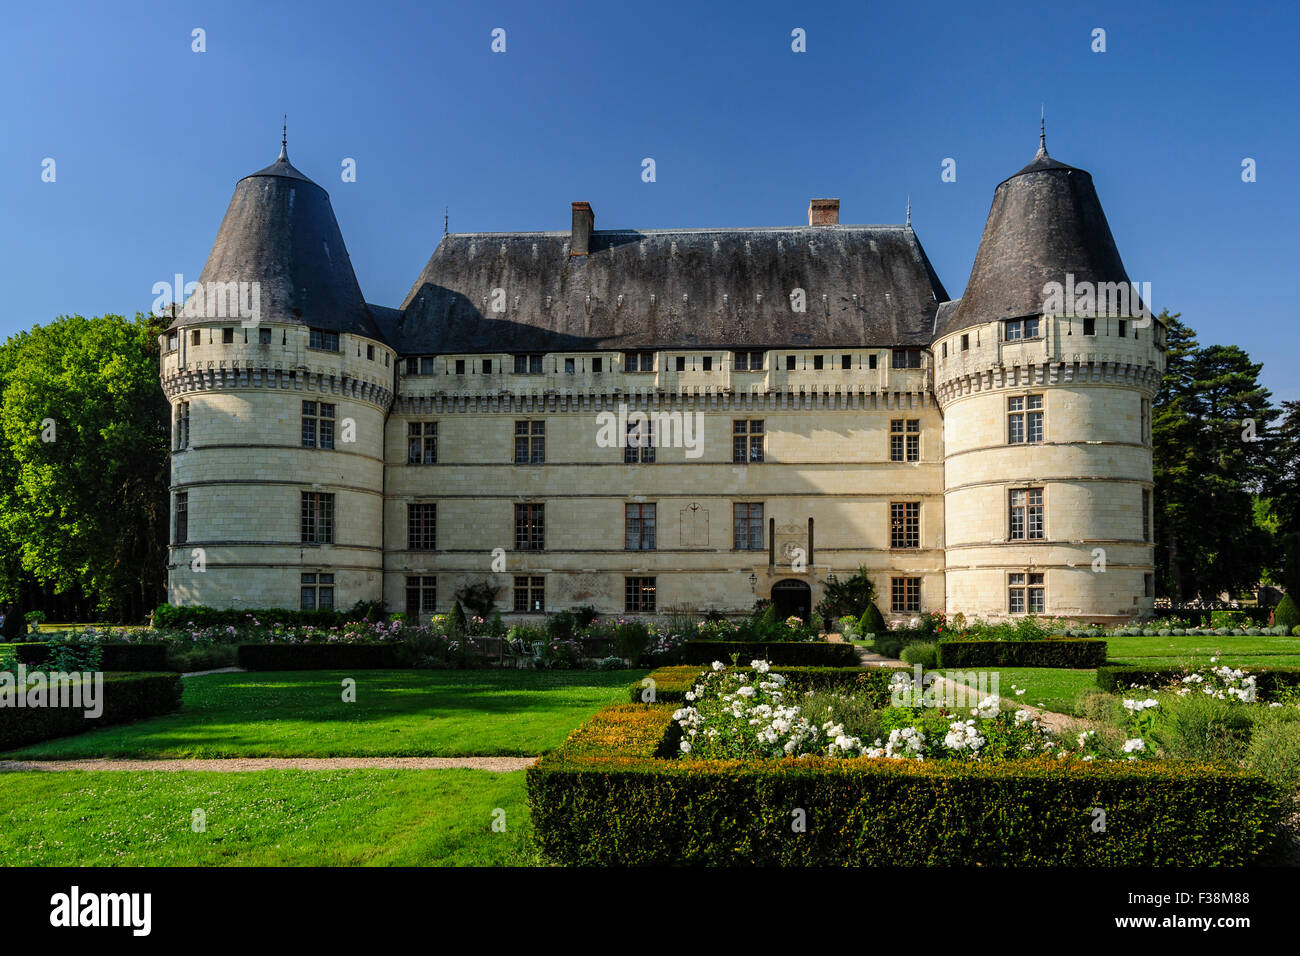 france loire valley indre et loire islette castle chateau de stock photo royalty free image. Black Bedroom Furniture Sets. Home Design Ideas